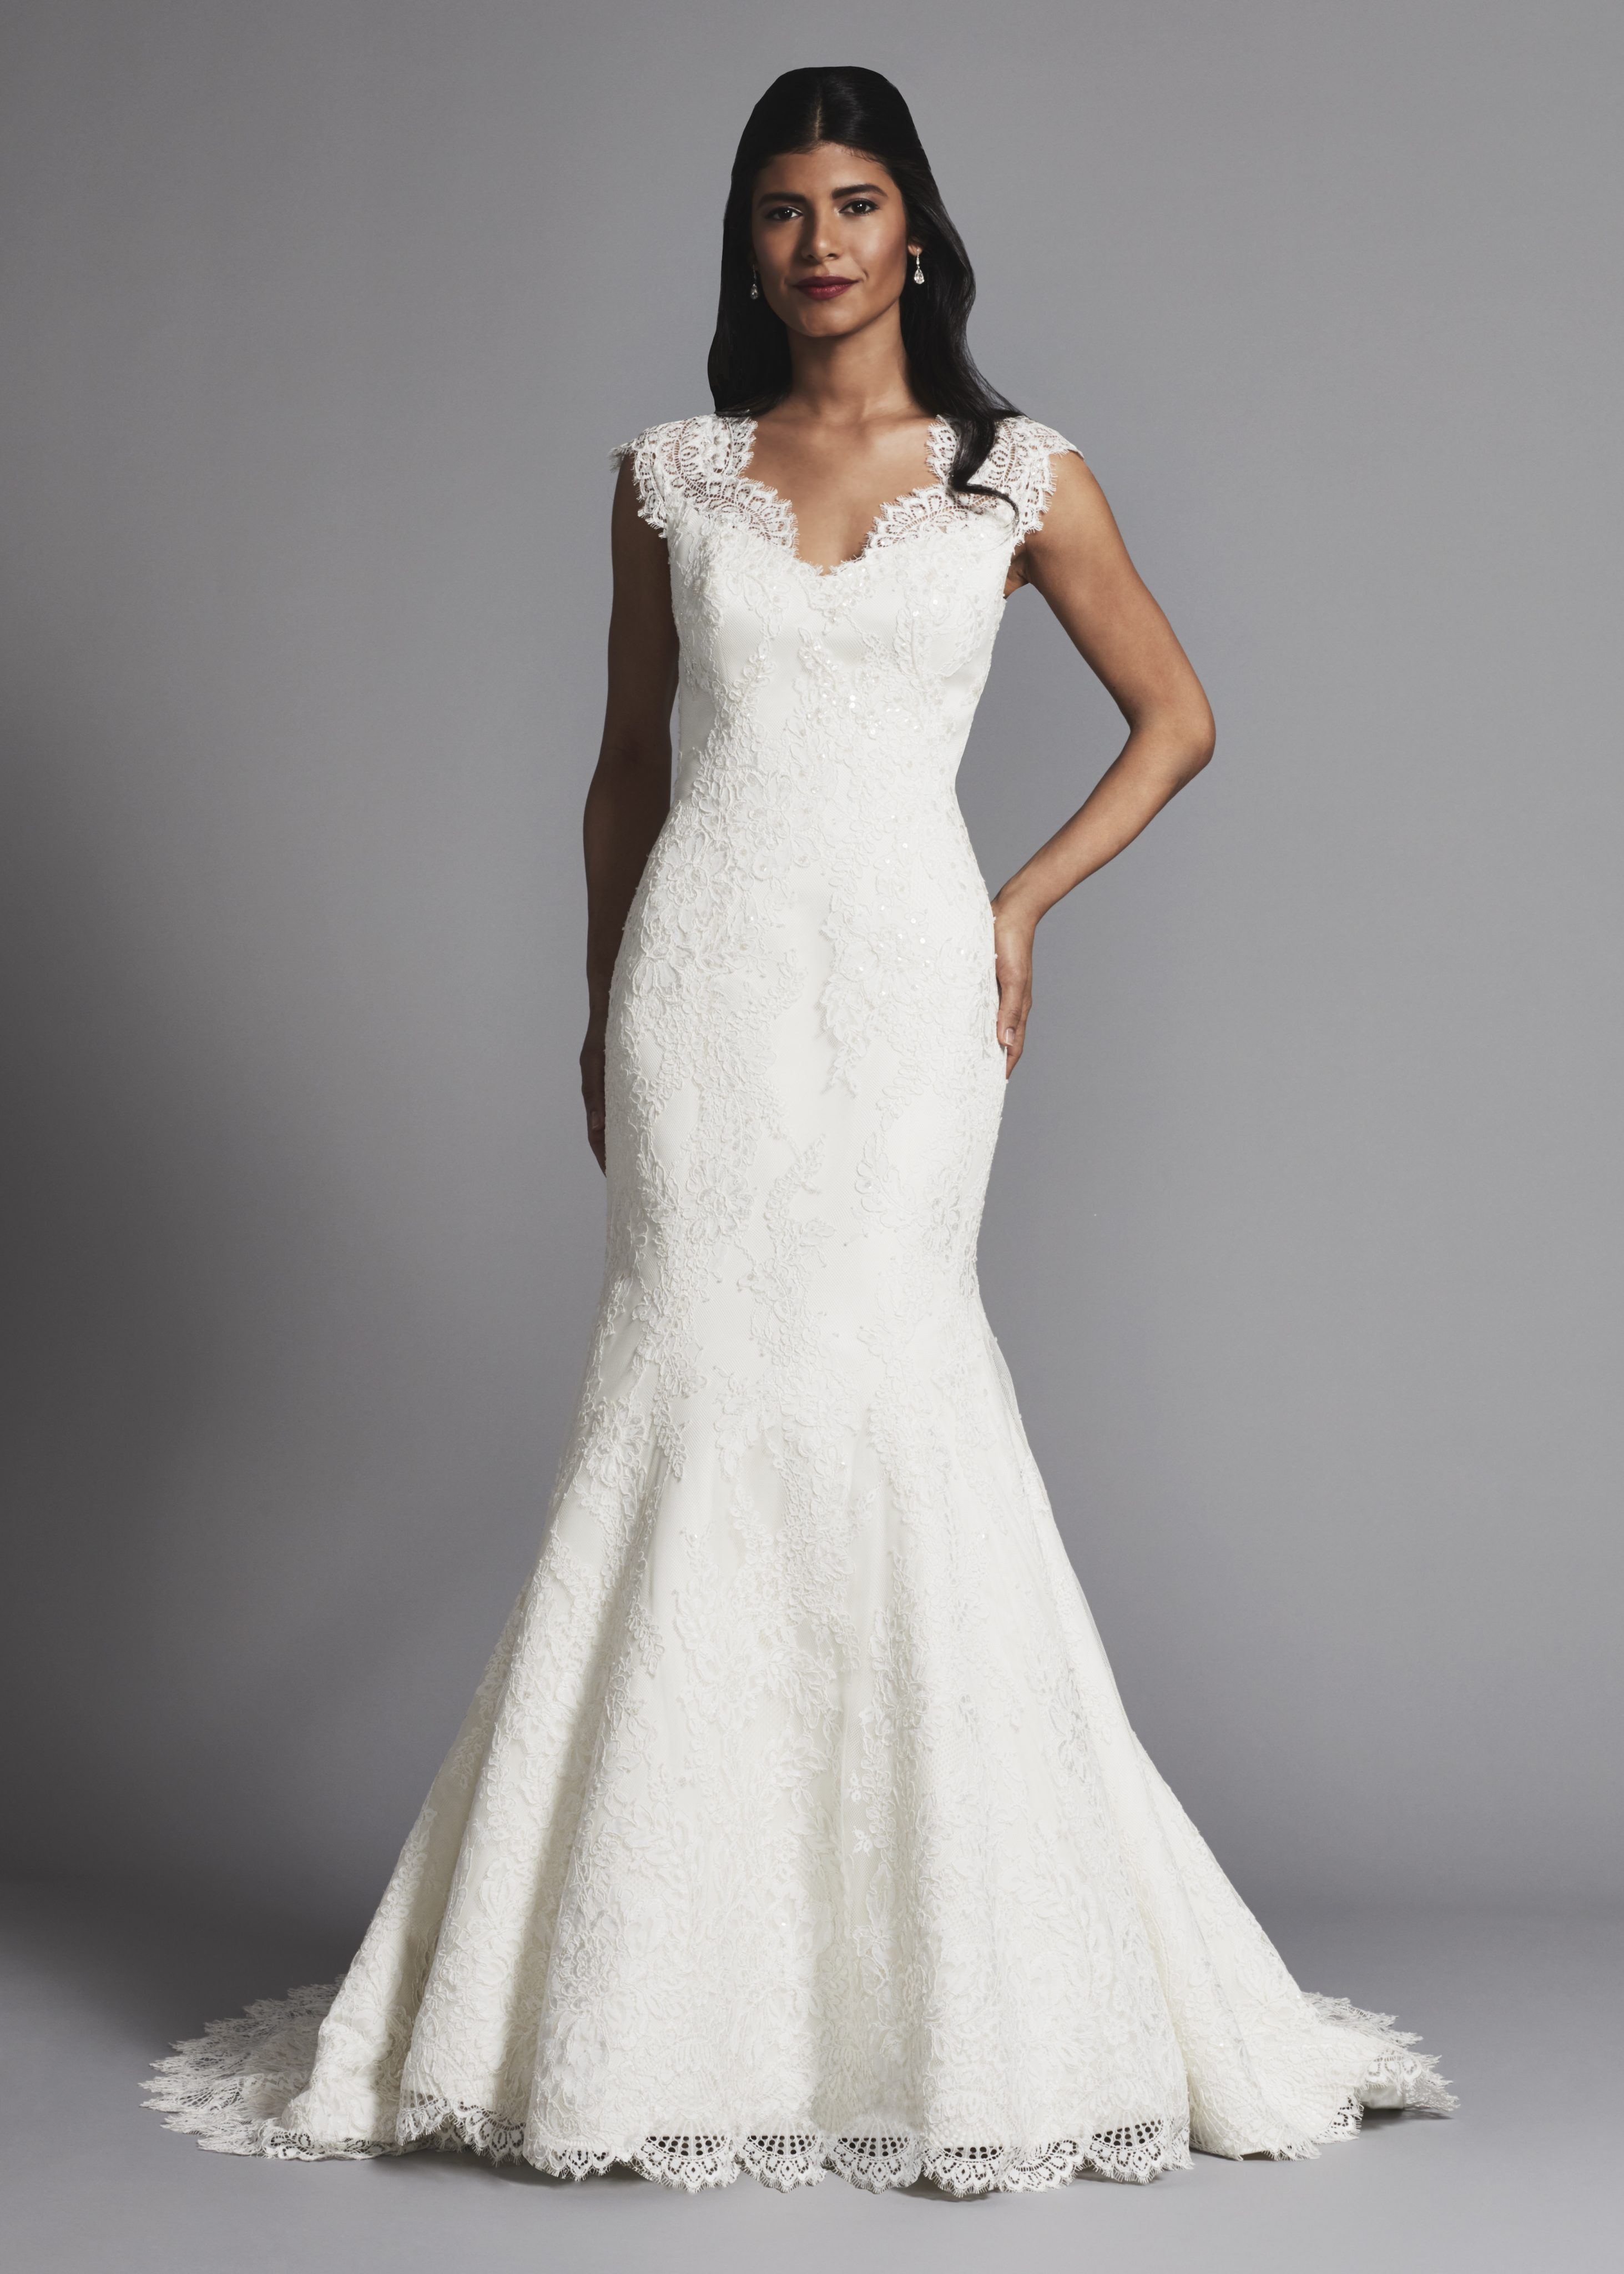 Lace Cap Sleeves Fit And Flare Wedding Dress Kleinfeld Bridal